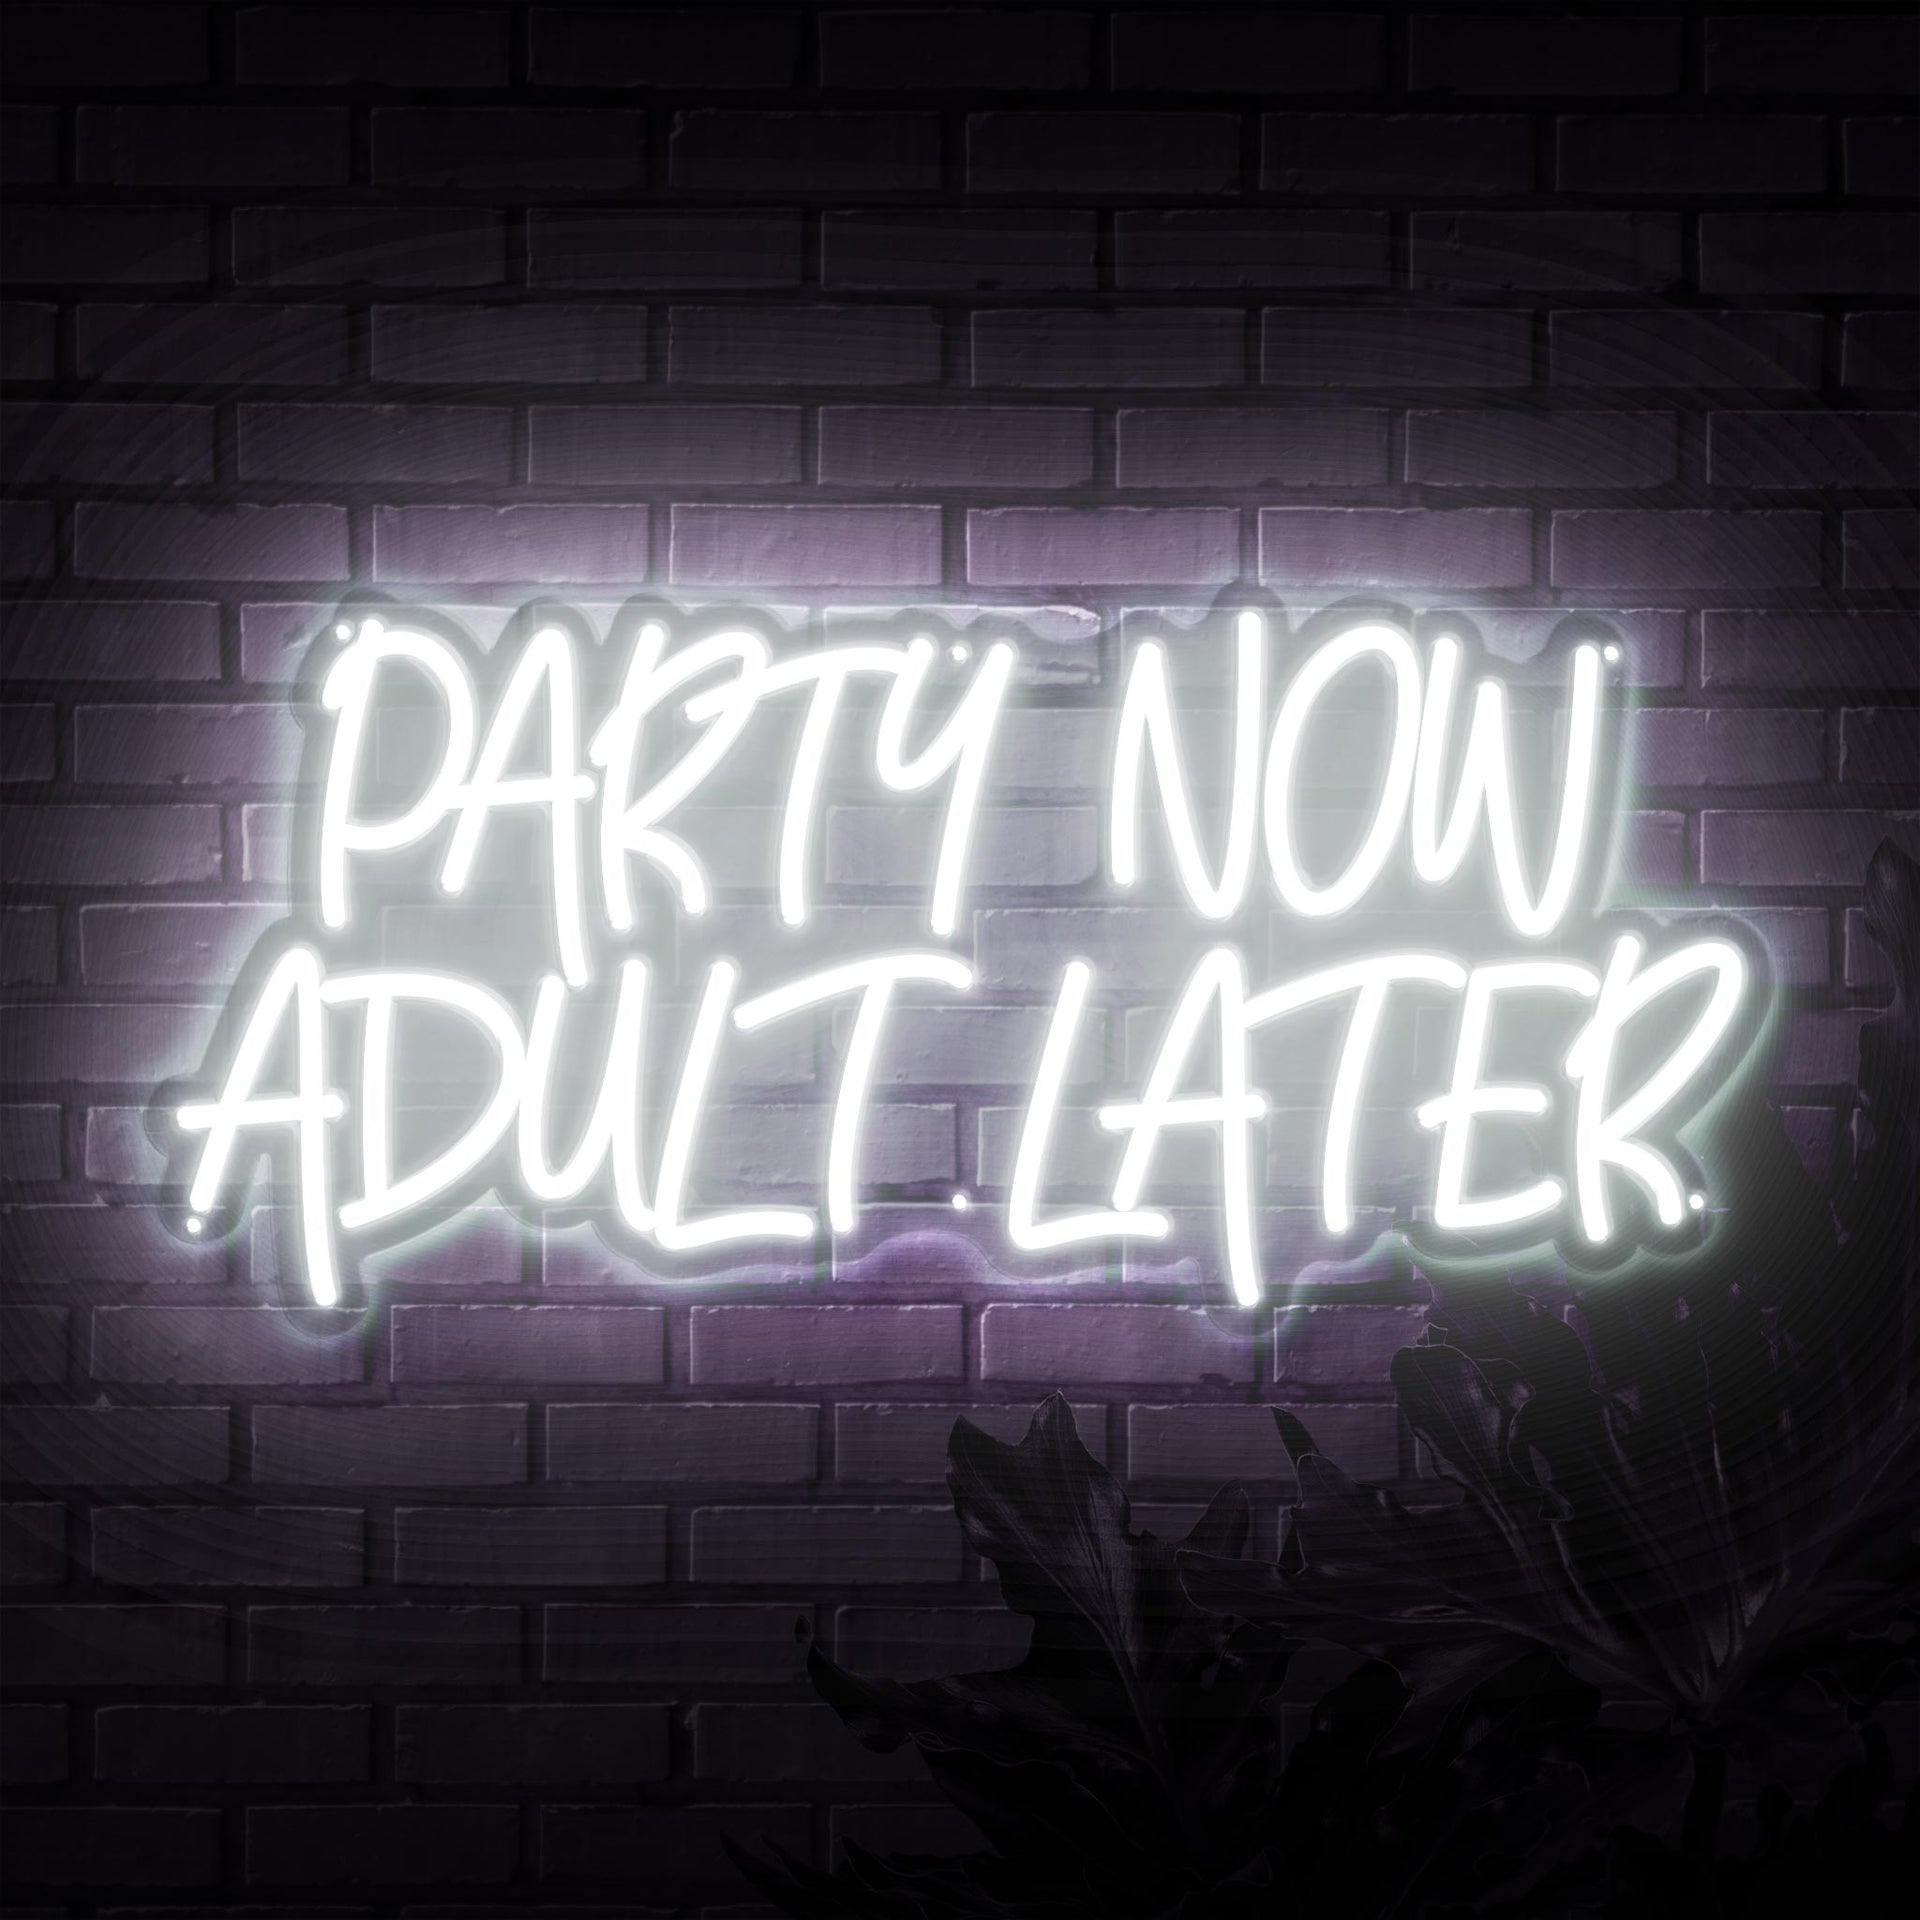 Party Now Adult Later Neon Sign - Sketch & Etch Neon